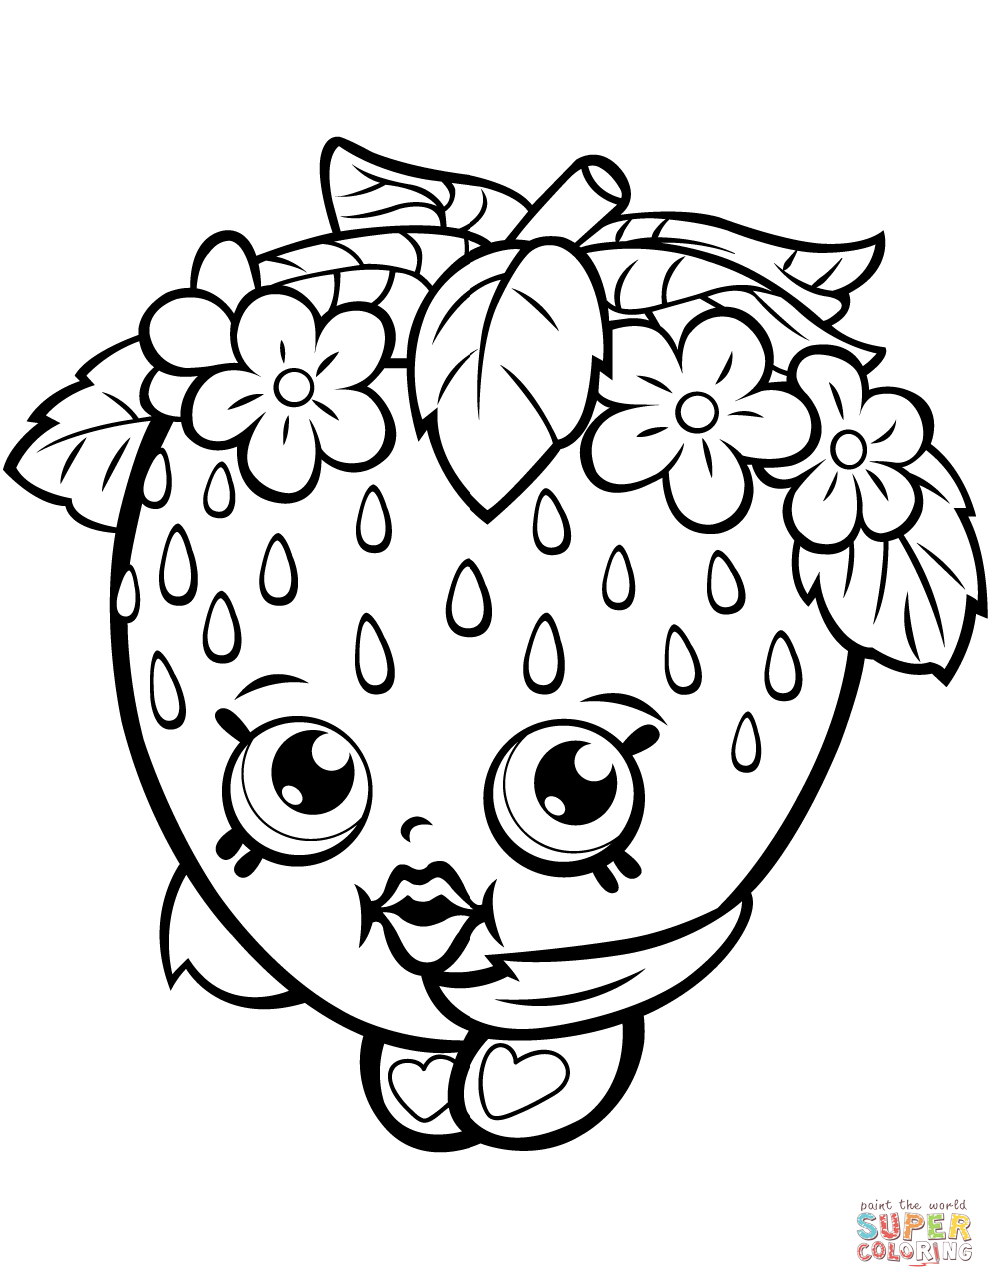 995x1288 Strawberry Kiss Shopkin Coloring Page Free Printable Coloring Pages